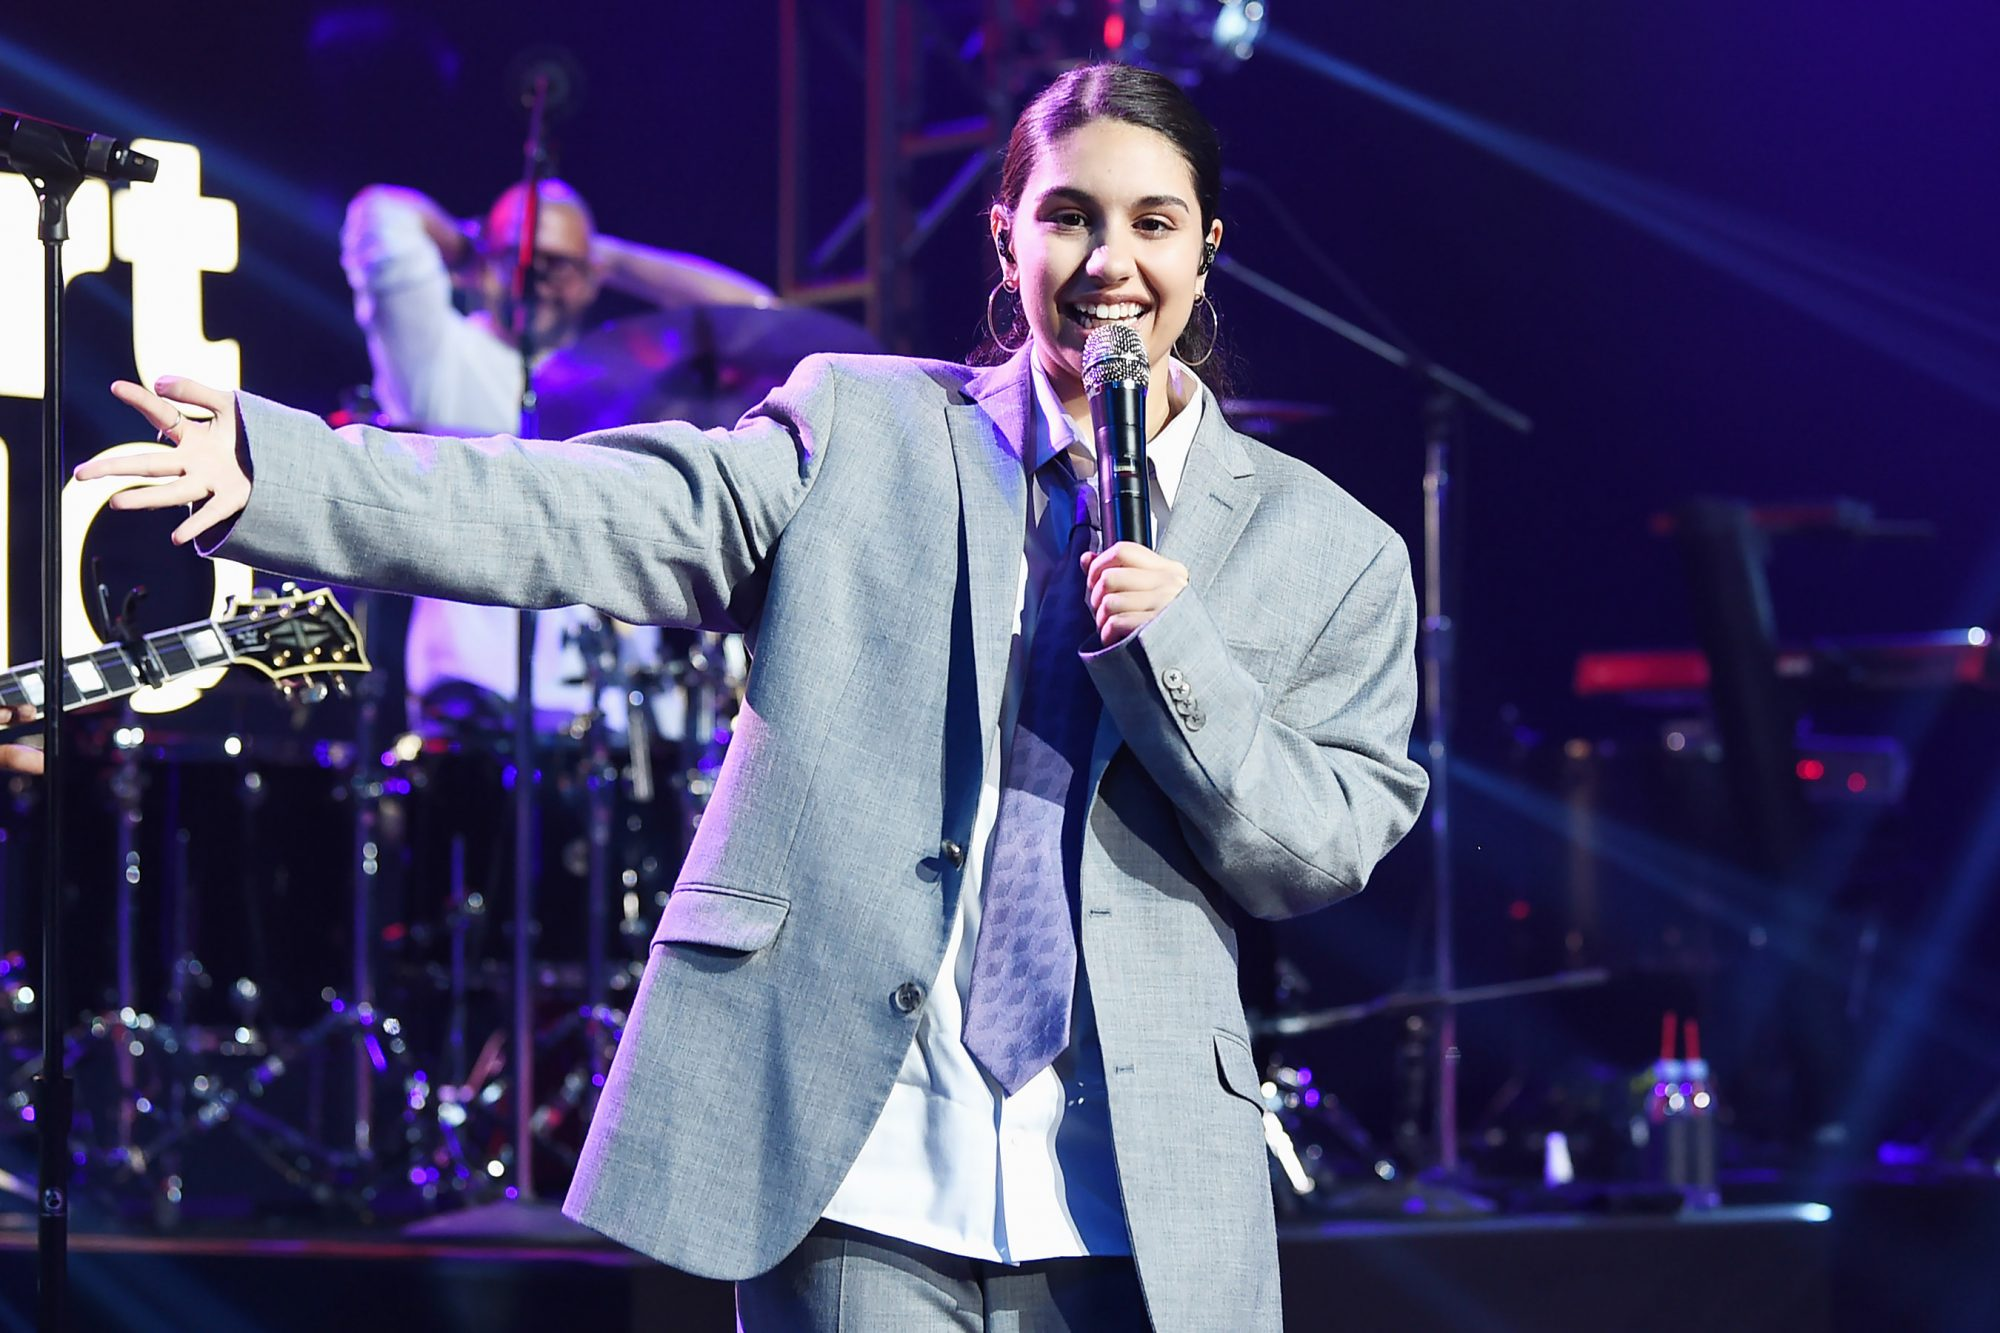 iHeartRadio Album Release Party With Alessia Cara At The iHeartRadio Theater in LA